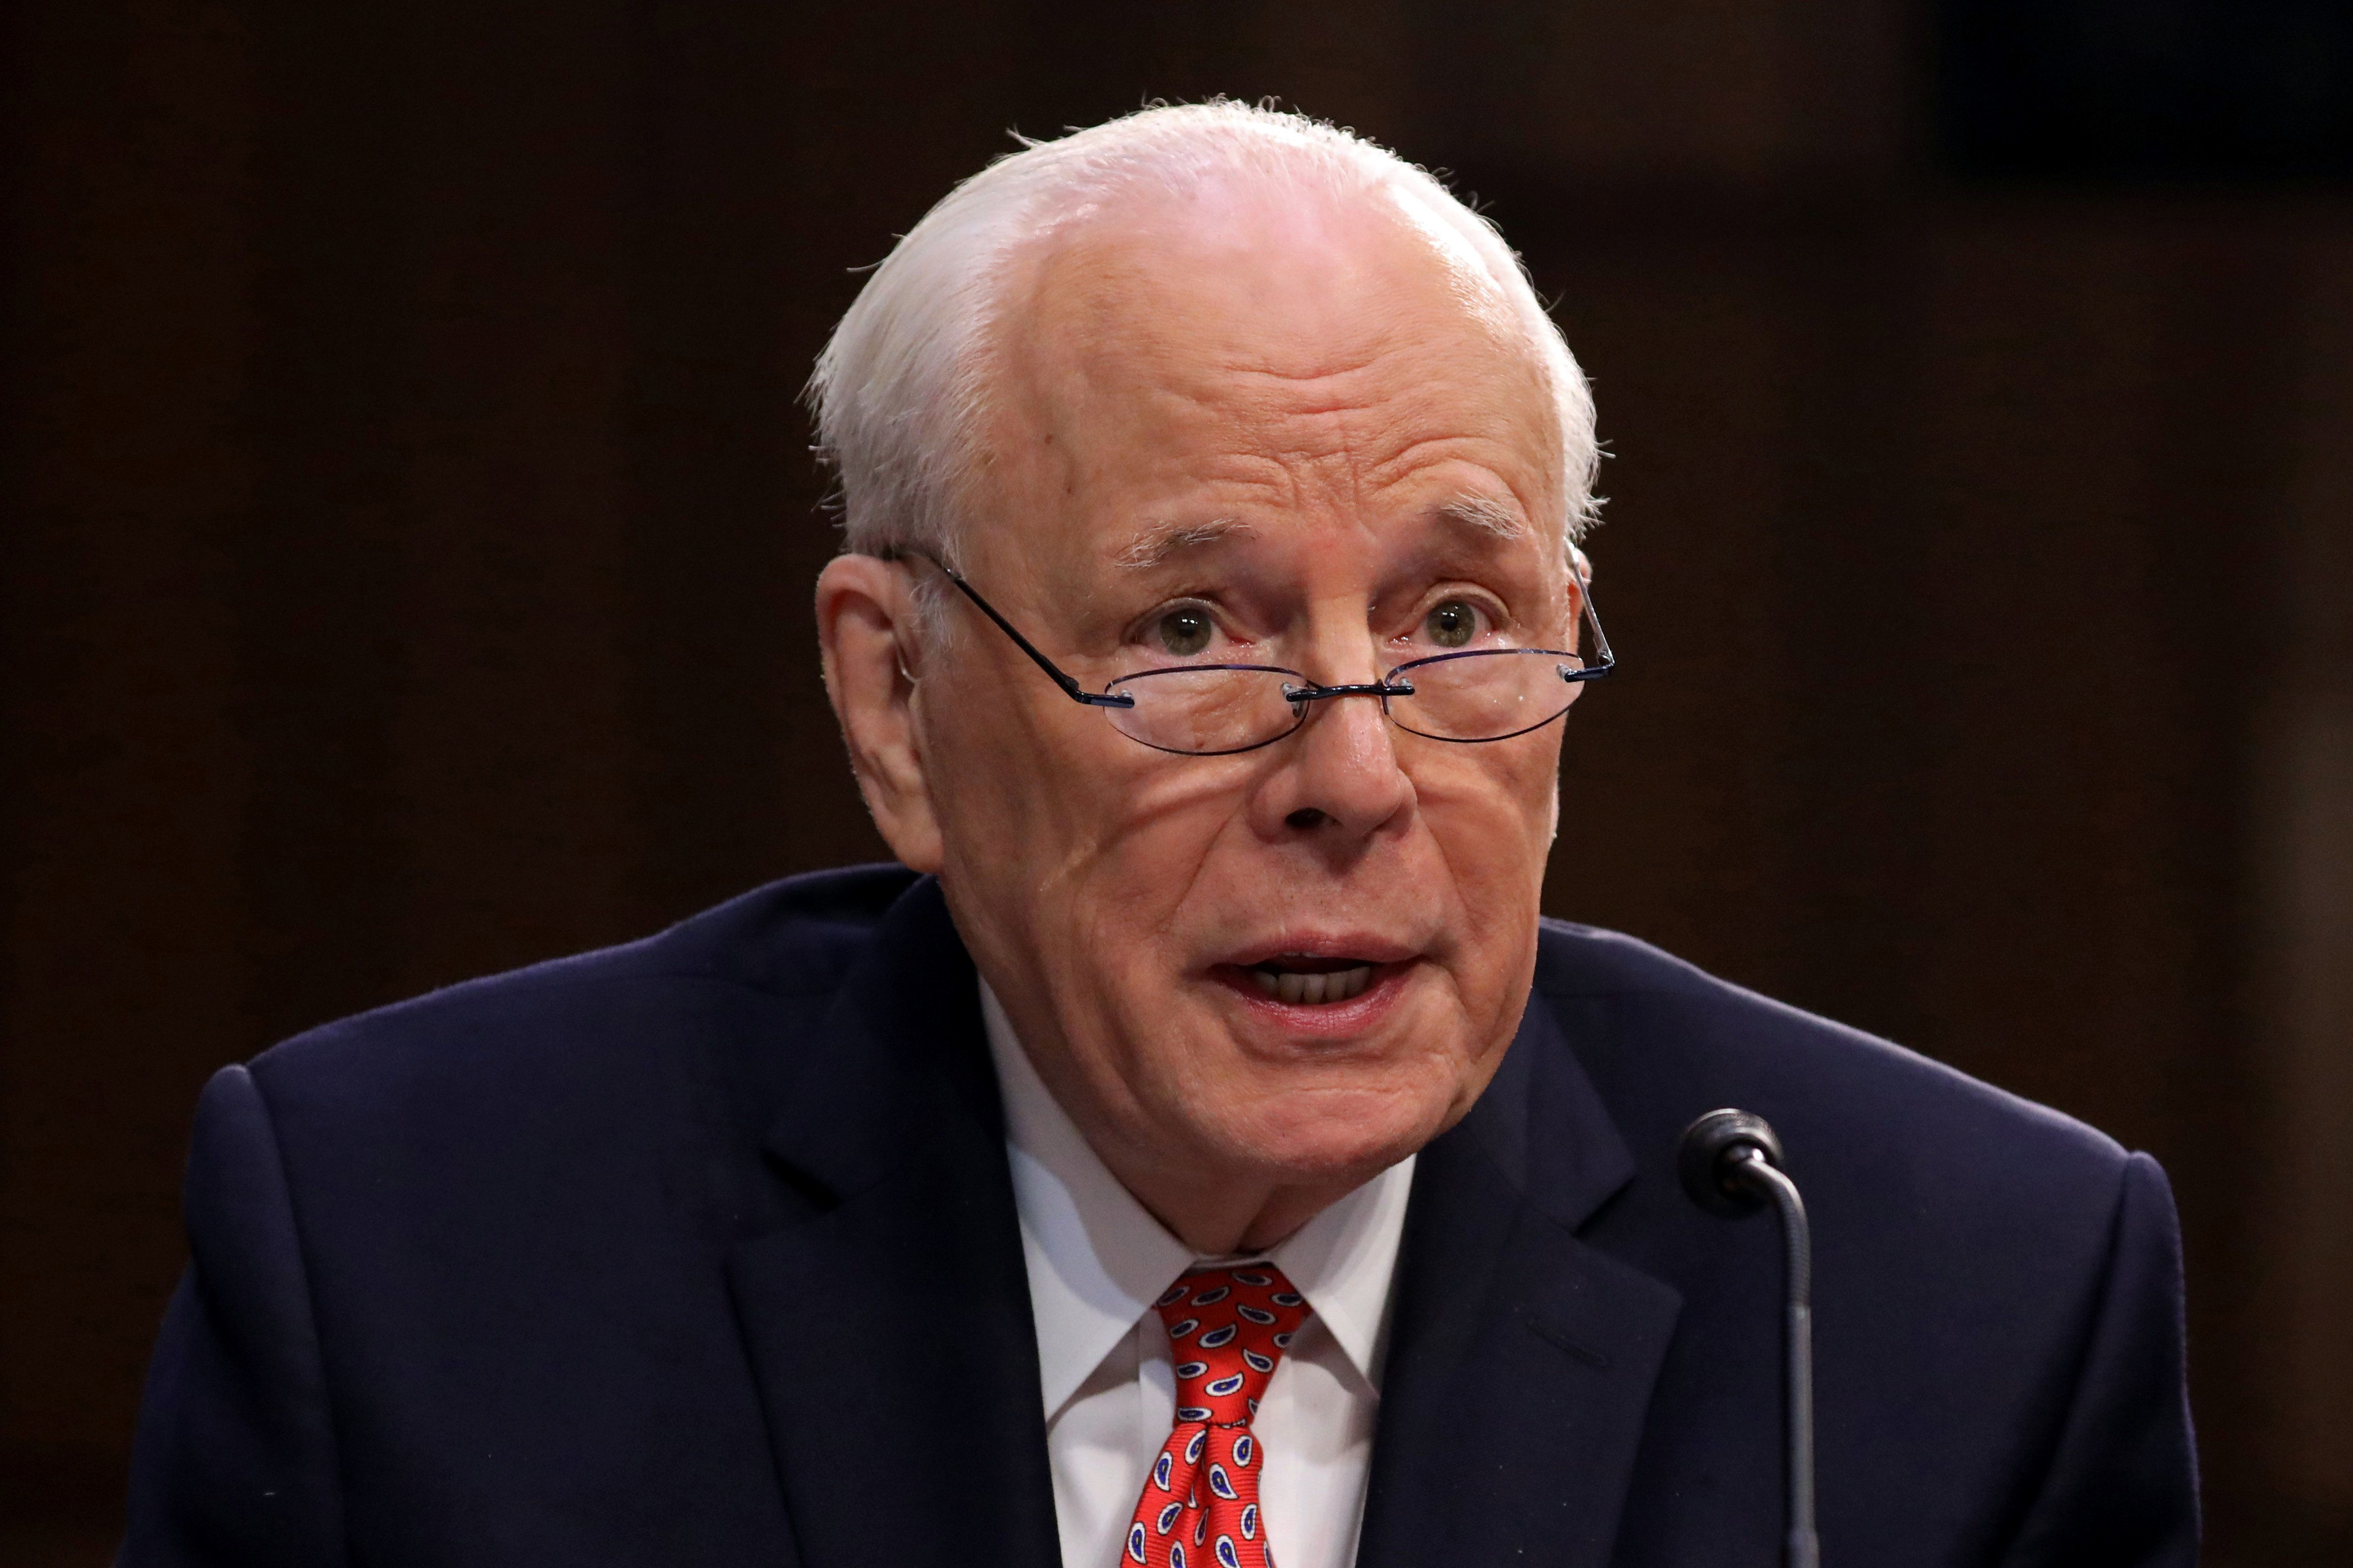 John Dean, former Nixon White House counsel, testifies on the fourth day of Senate Judiciary Committee confirmation hearings for U.S. Supreme Court nominee Judge Brett Kavanaugh on Capitol Hill in Washington, U.S., September 7, 2018. REUTERS/Chris Wattie